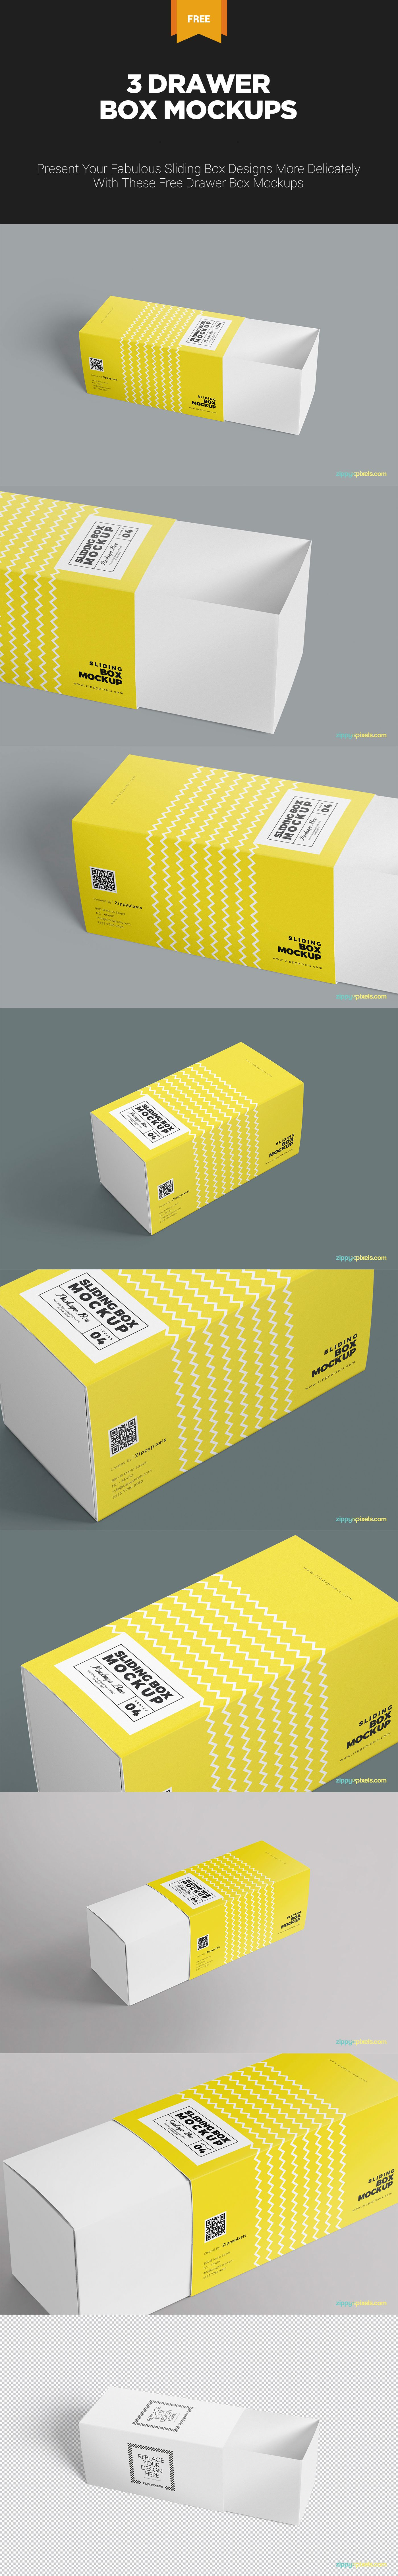 Download 3 Free Cardboard Drawer Box Mockups Zippypixels Box Mockup Slide Box Mockup